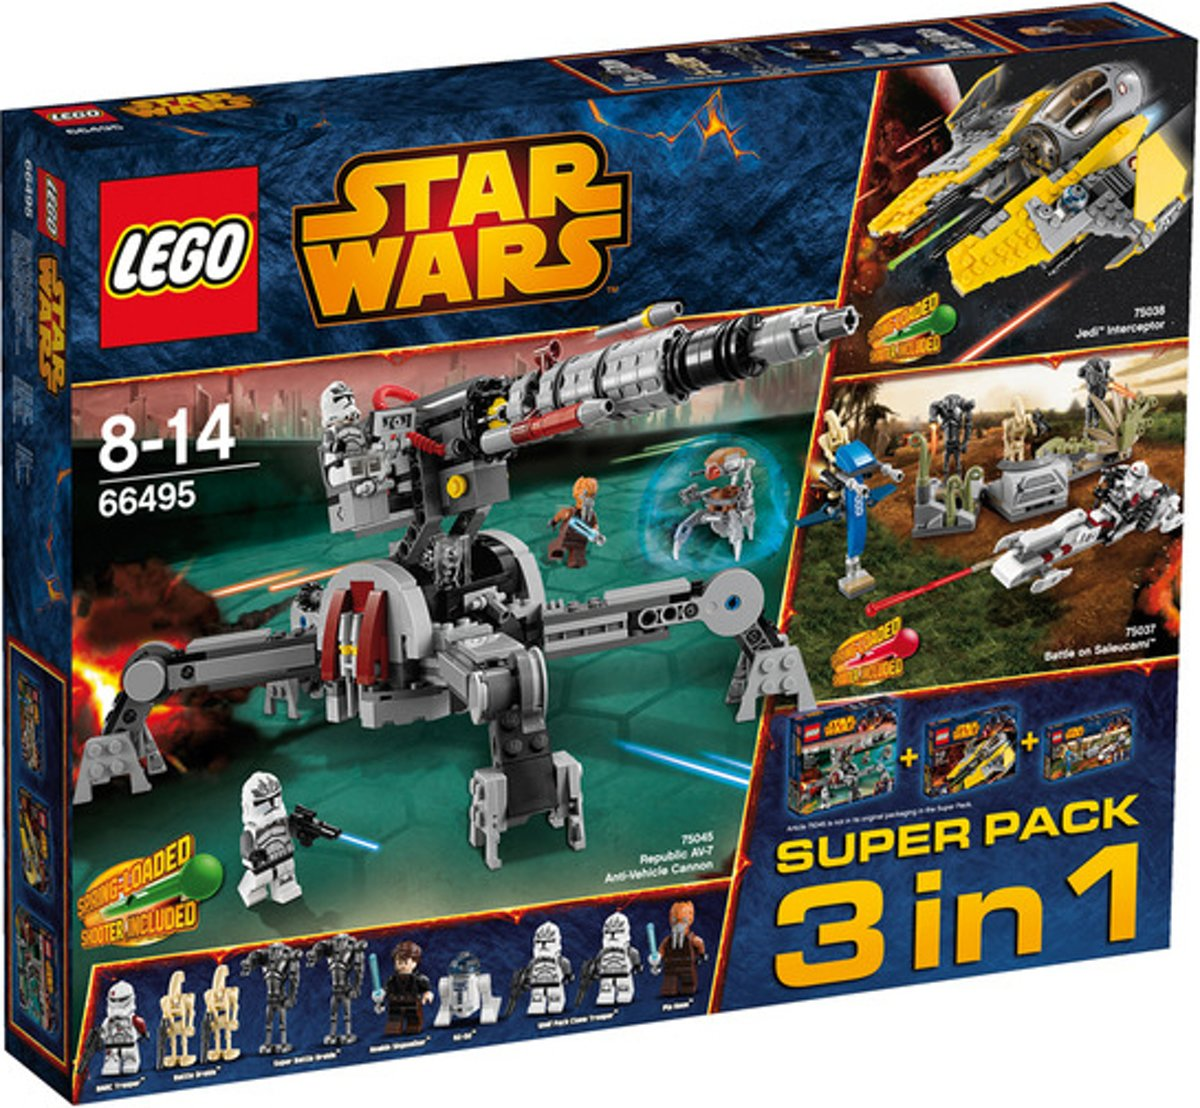 LEGO Star Wars 3 in 1 Superpack - 66495